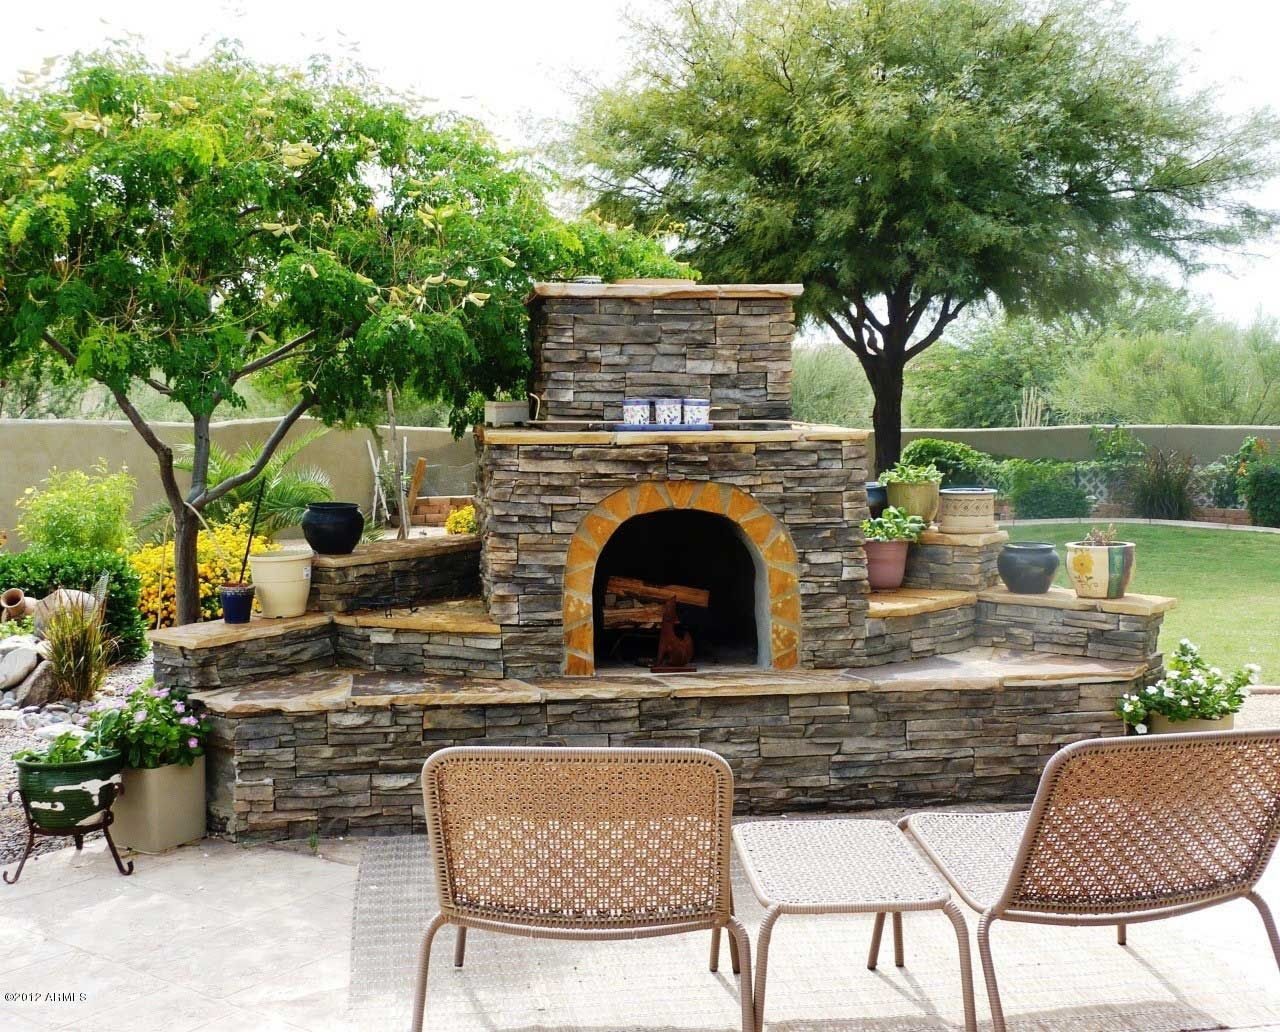 Merveilleux Outdoor Patio And Fireplace Ideas